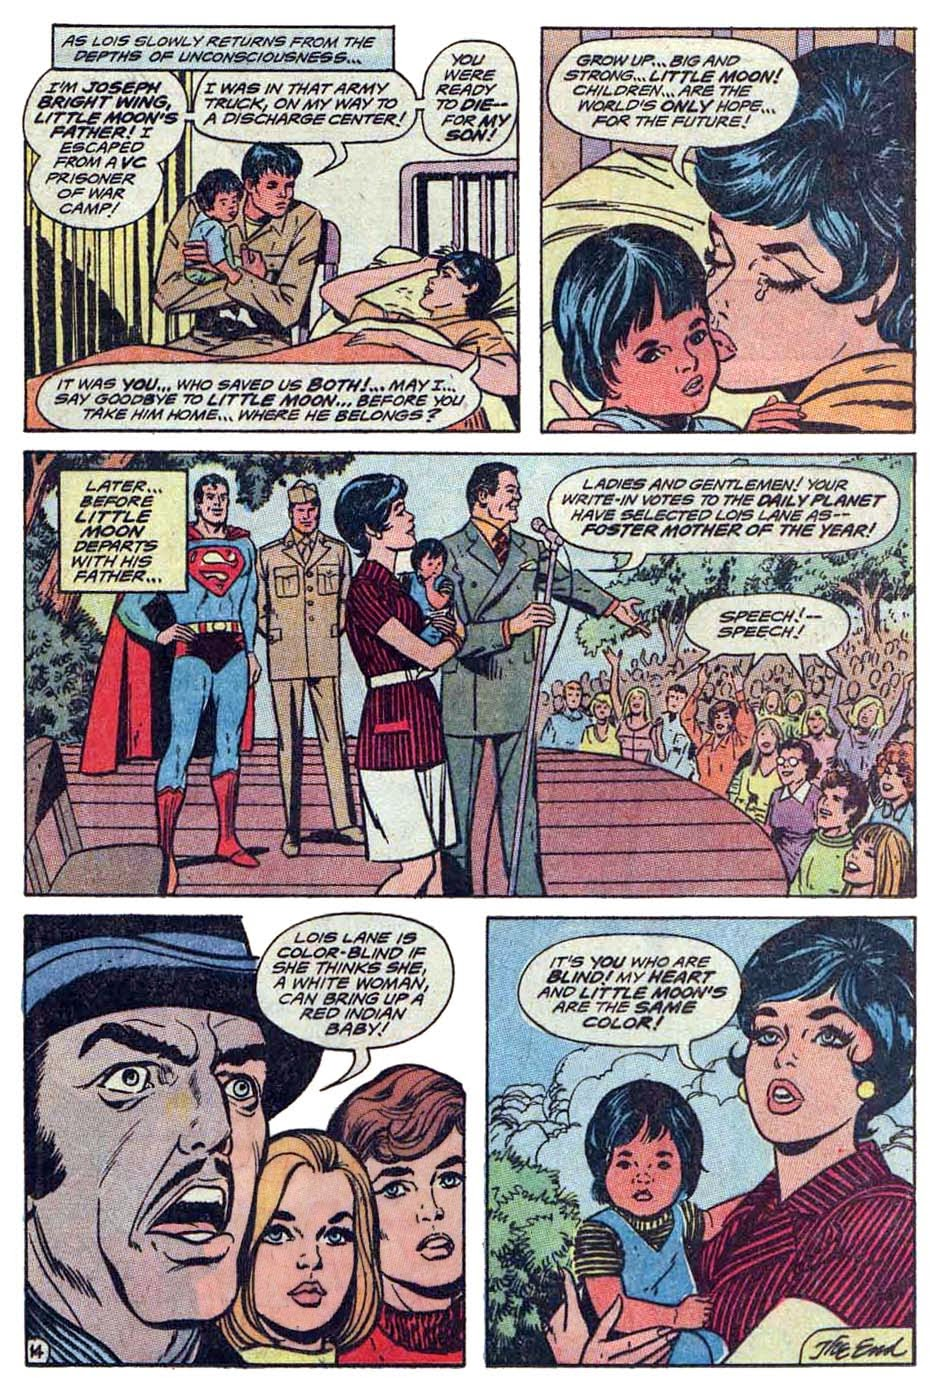 The bronze age of blogs lois lane in indian death charge supes smugly misses the point and tells lois the race war is over and her looking right at us and telling him its only a cease fire you go sister altavistaventures Gallery